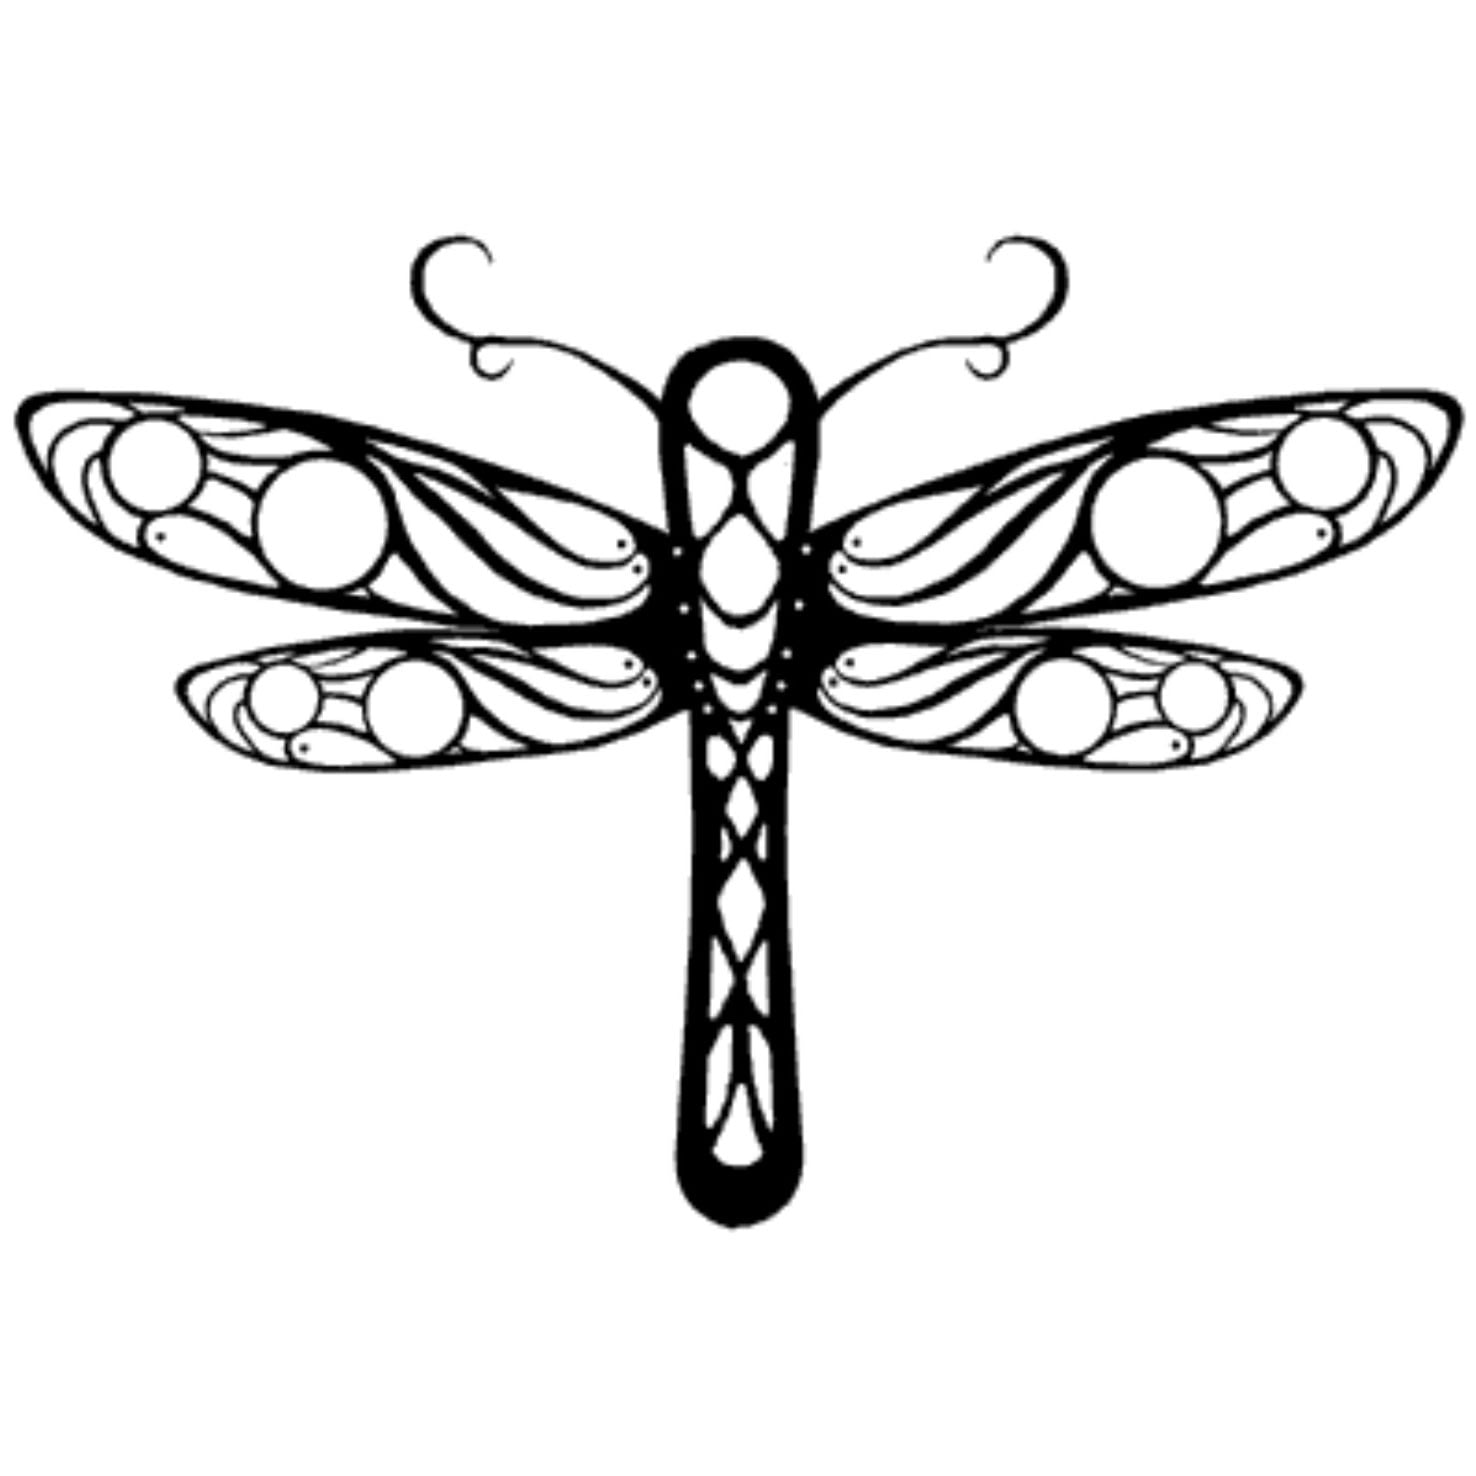 Tribal Dragonfly Tattoo Designs